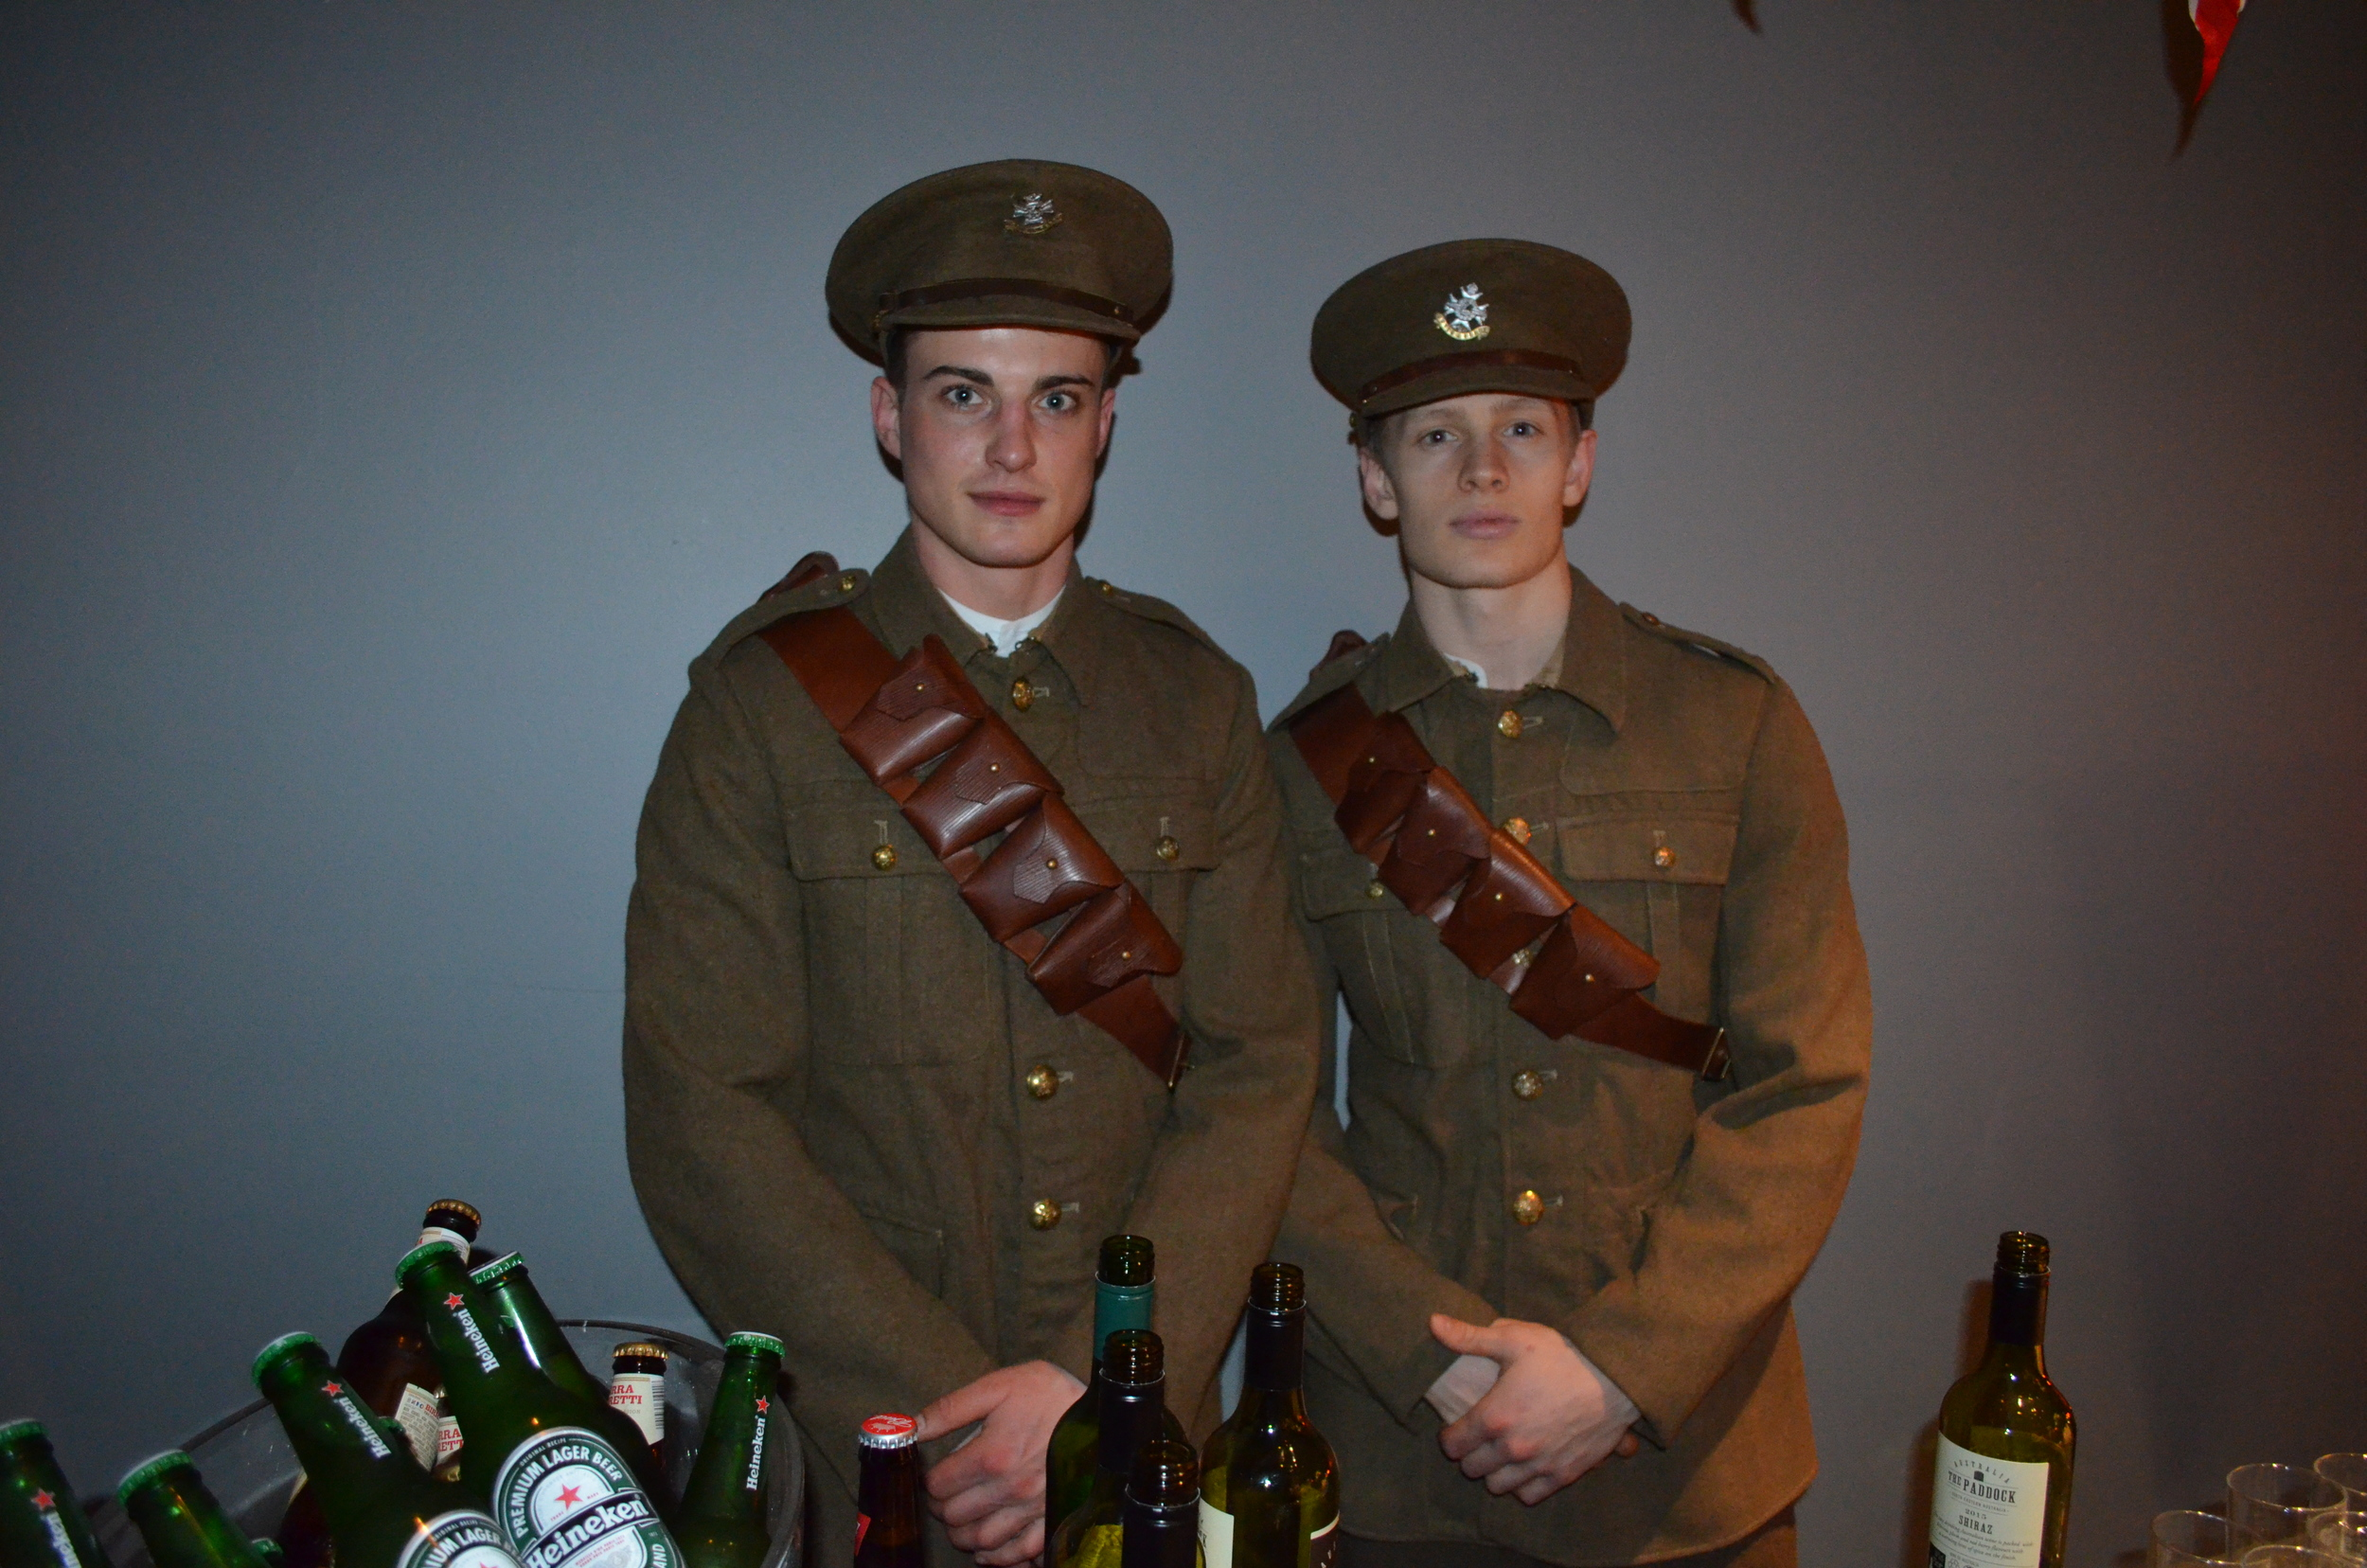 The World War Two theme continued throughout the night.